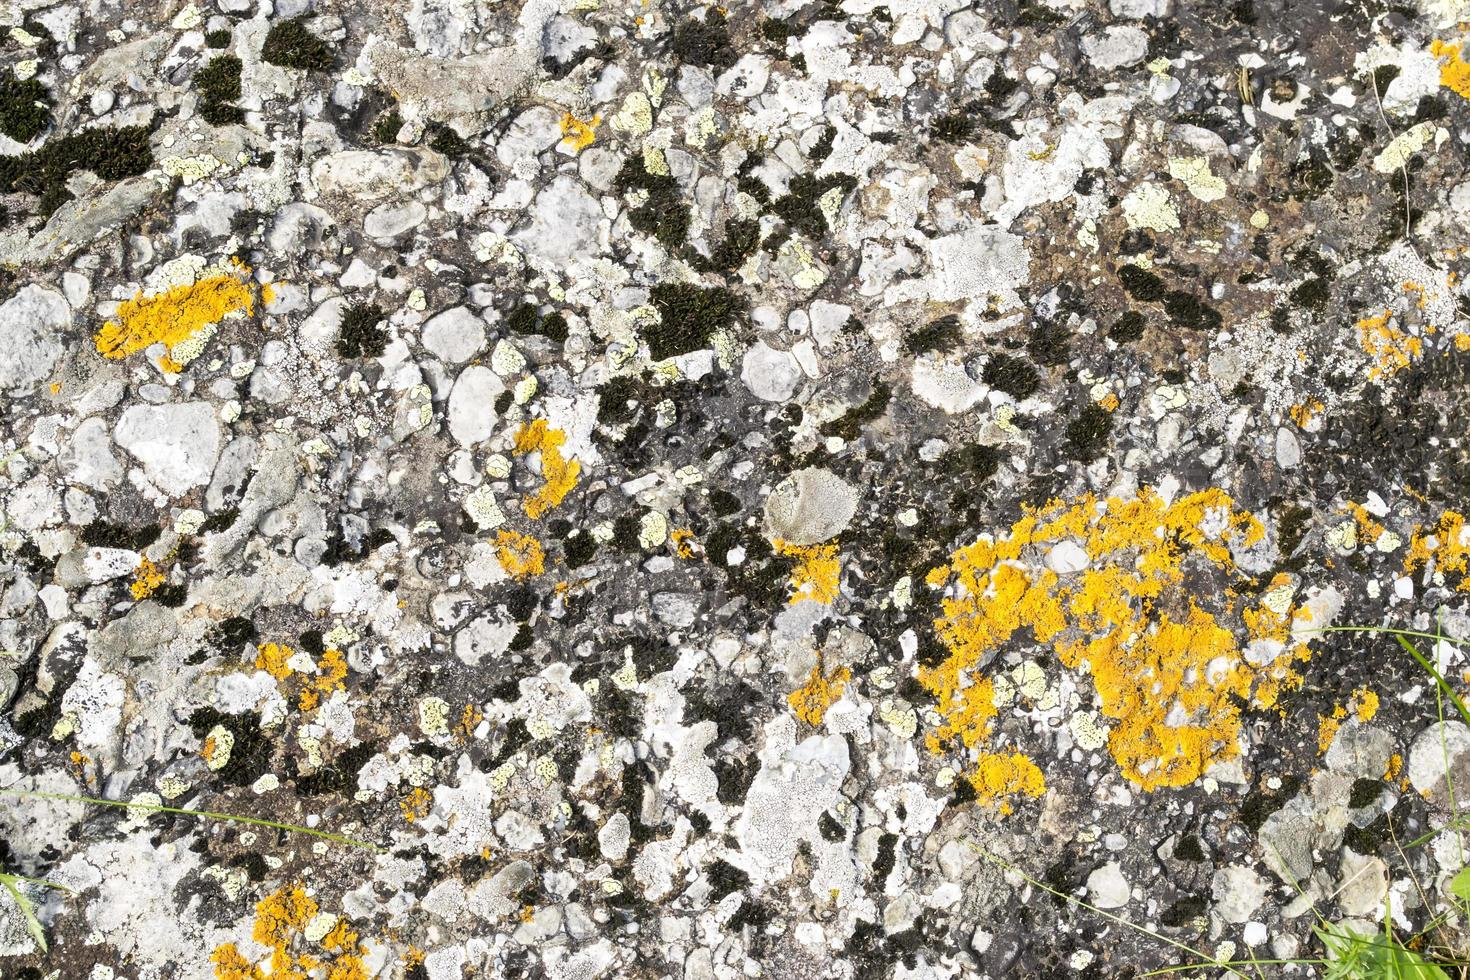 Rock with lichens photo